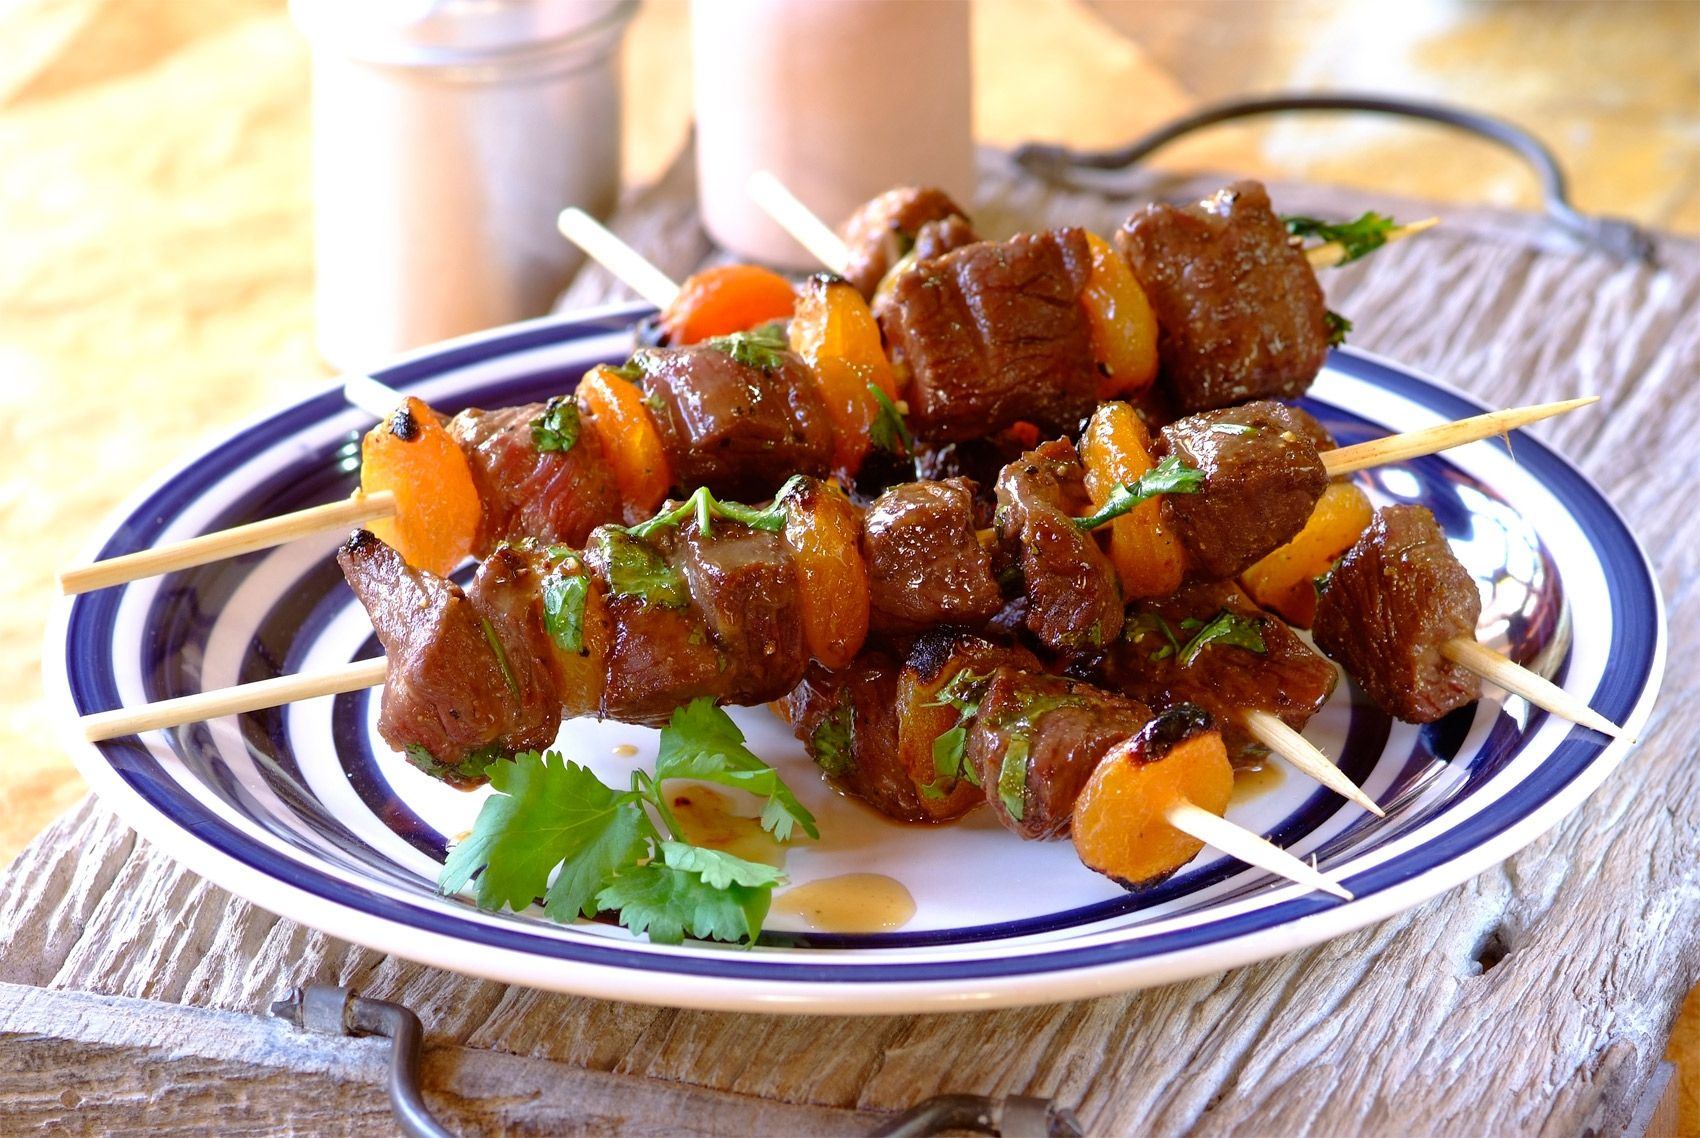 Ostrich Skewers Southern African Meat Is Low In Fat Compared To Other Red Meats